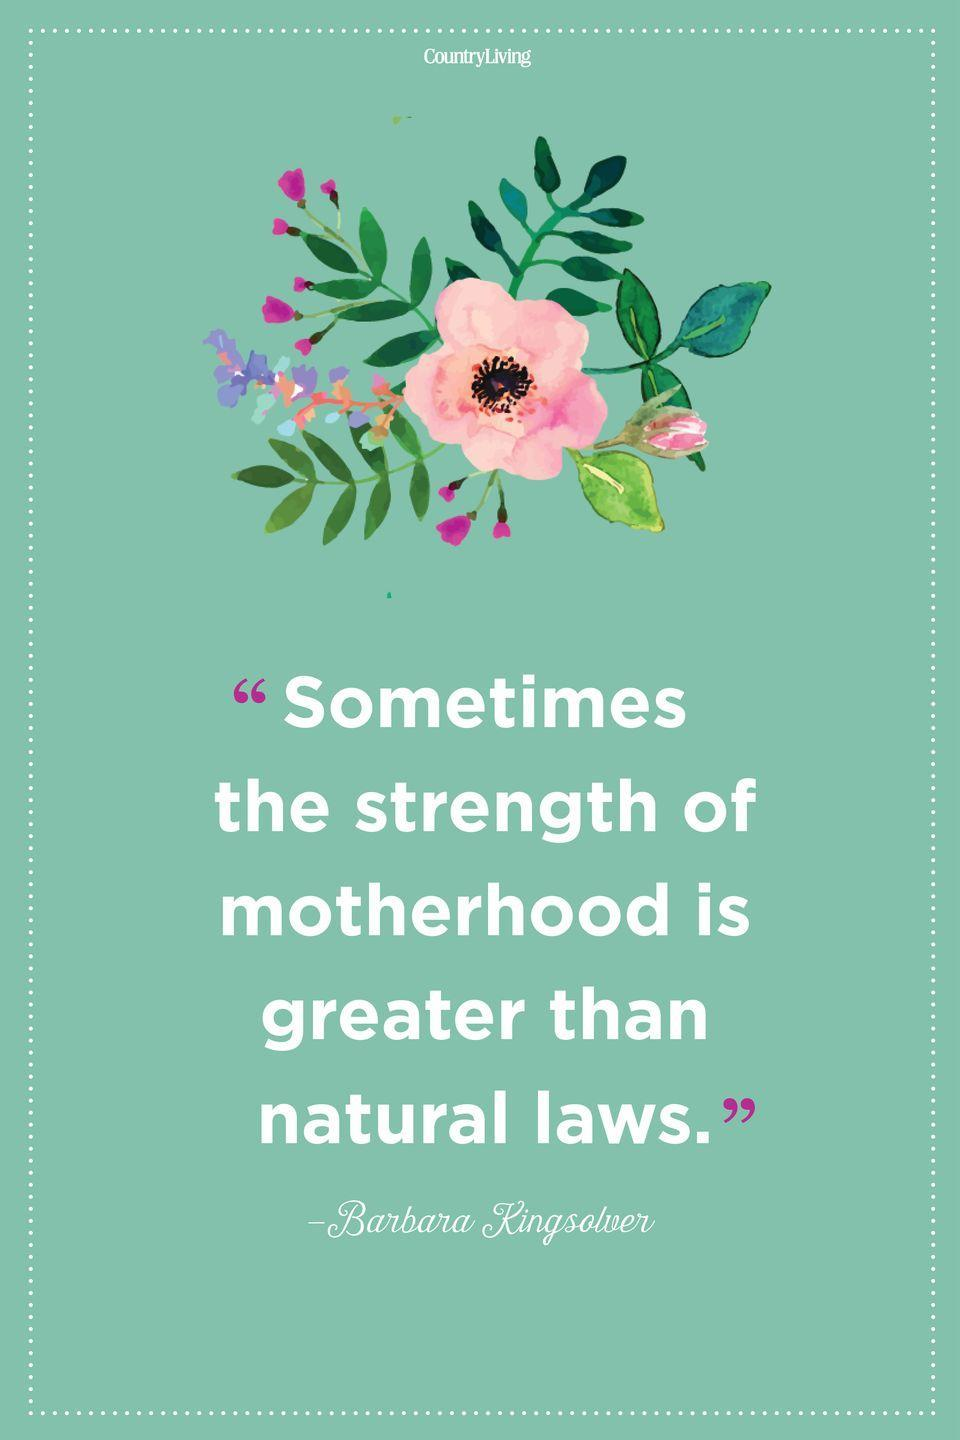 "<p>""Sometimes the strength of motherhood is greater than natural laws.""</p>"